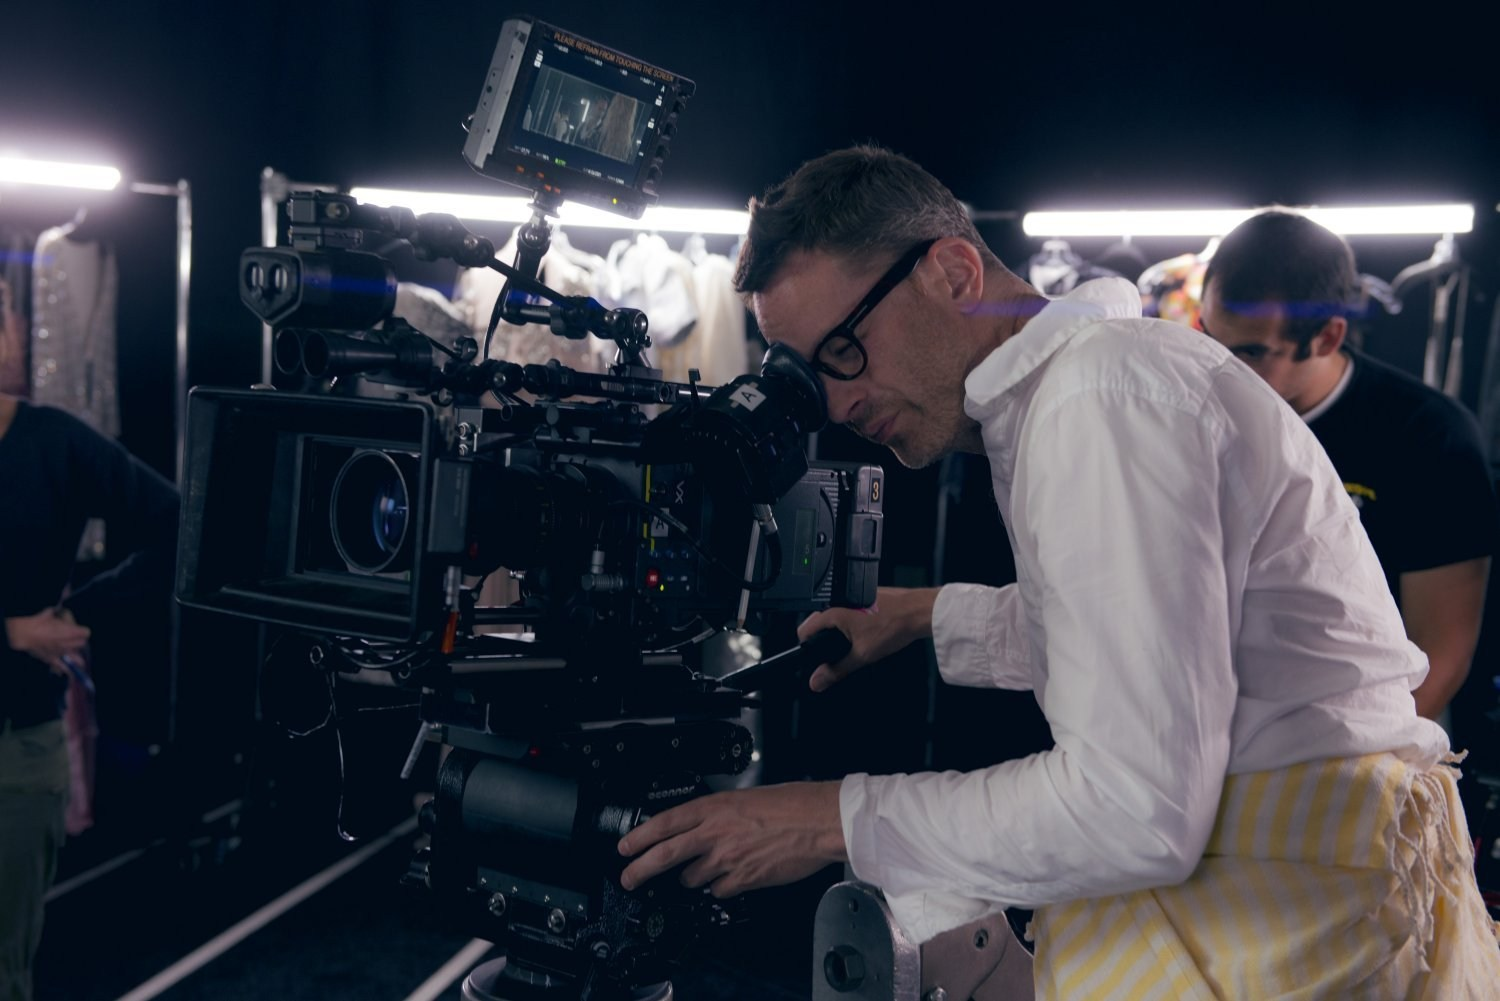 Nicolas Winding Refn Directs Behind the Scenes